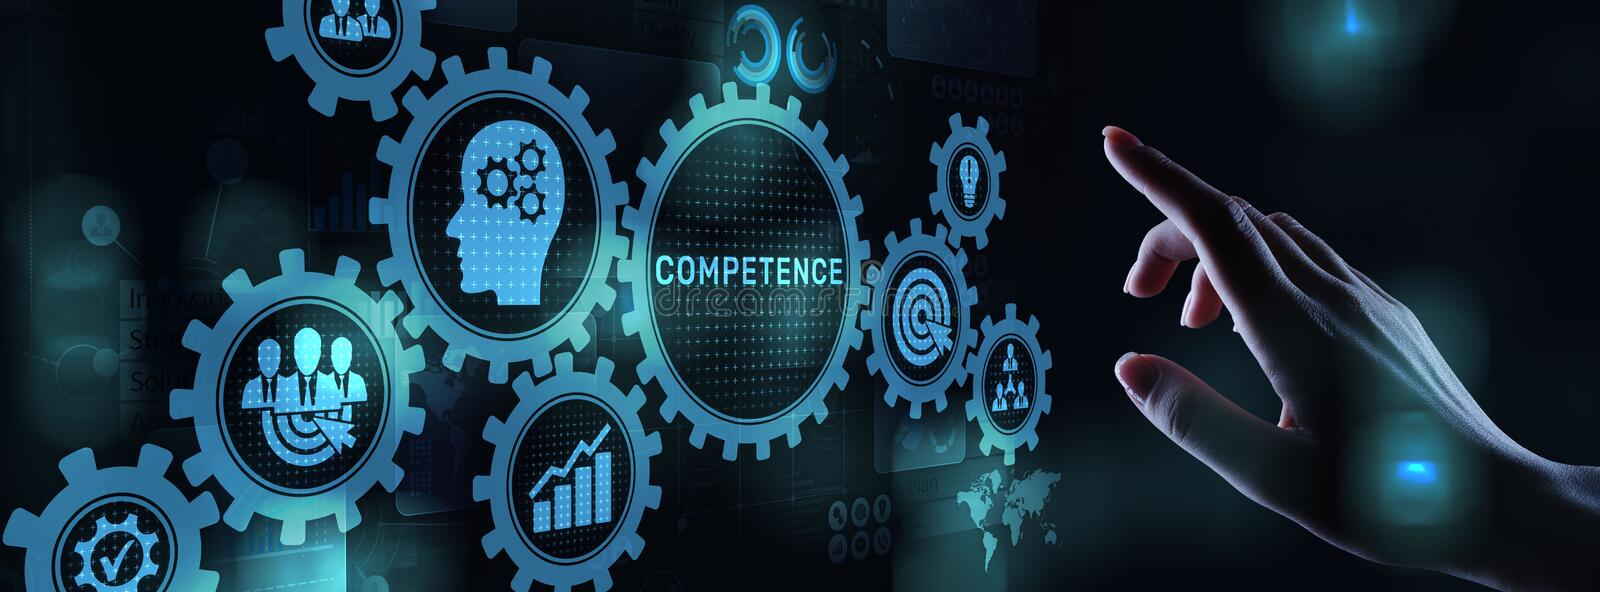 Competence Skill Personal development Business concept on virtual screen. stock images